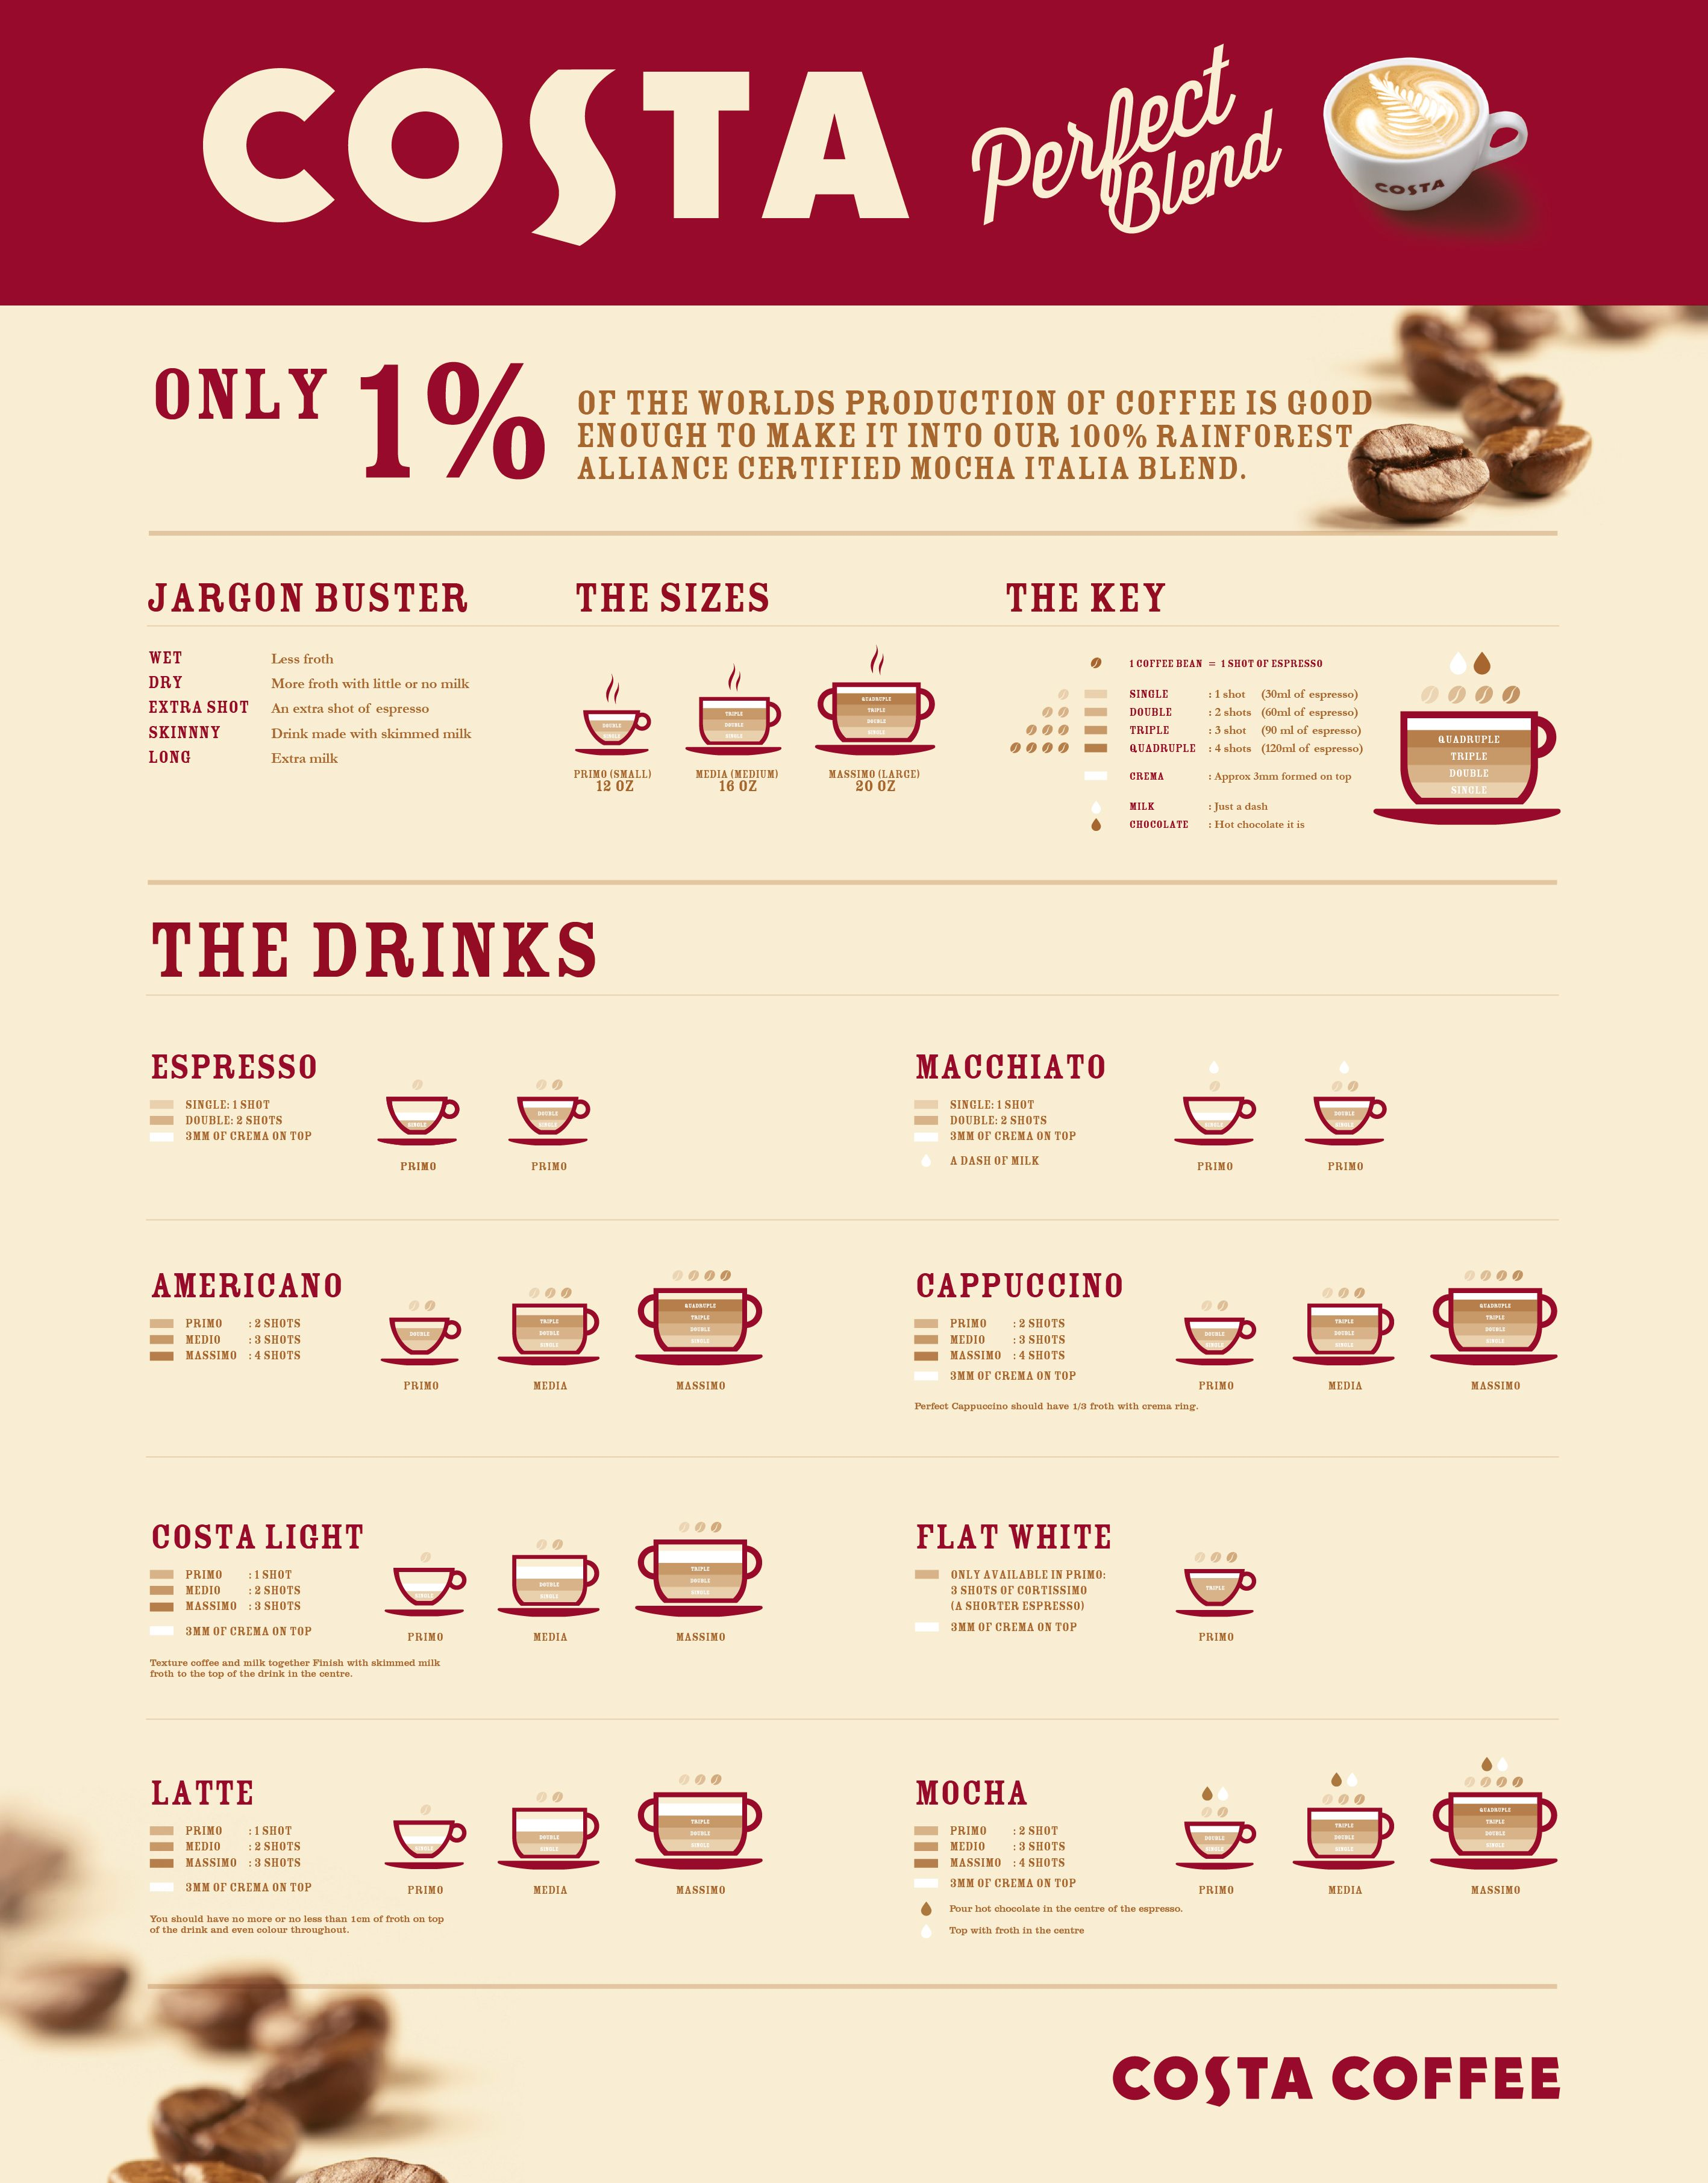 Costacoffee Coffee Infographic Lonocreative Costa Coffee Coffee Roasters Coffee Menu